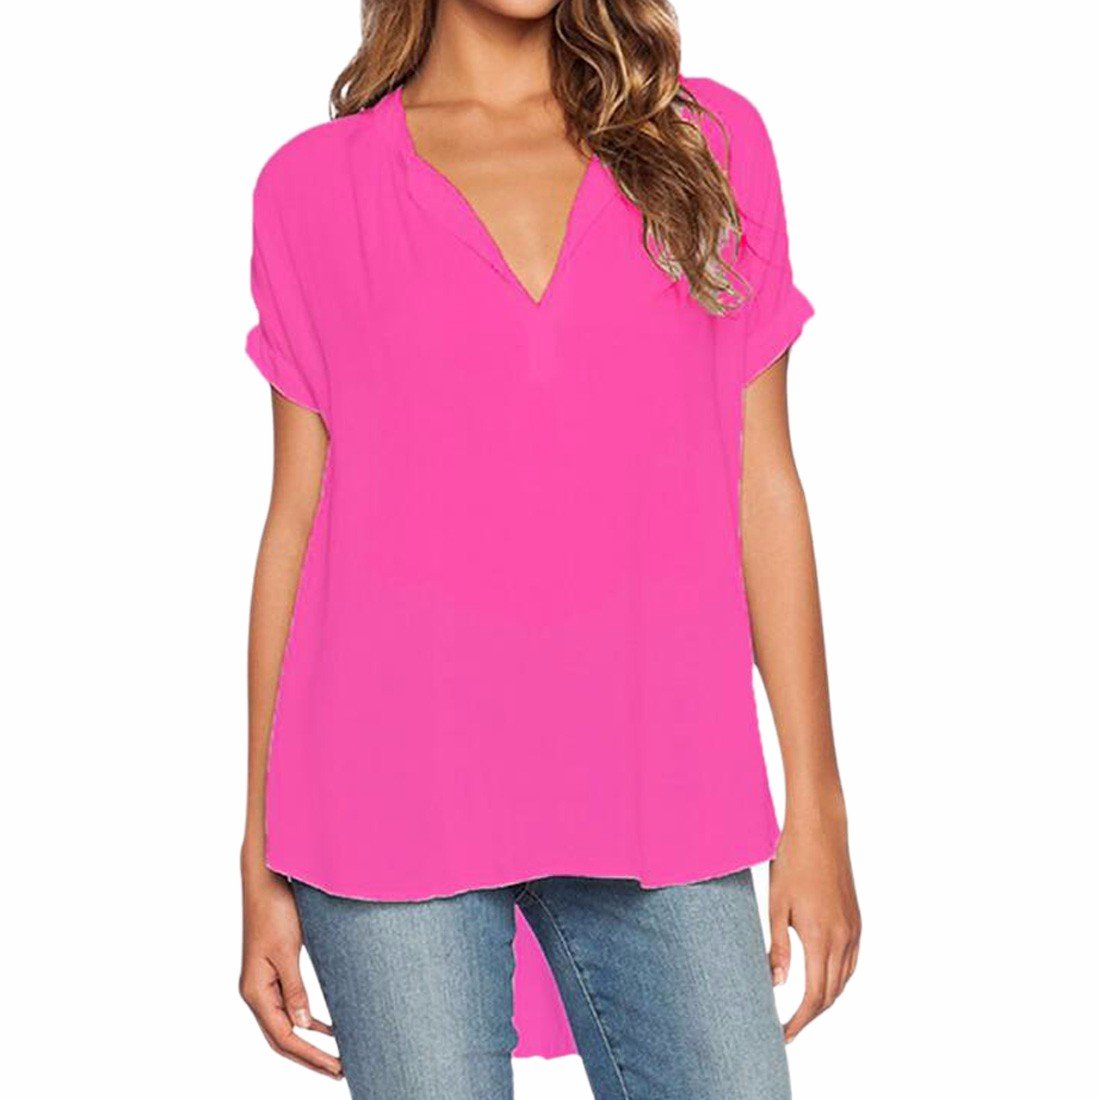 Women Solid Loose Chiffon Shirt Short Sleeves Blouse V Neck Tops Shirt Plus Size 1172S0907